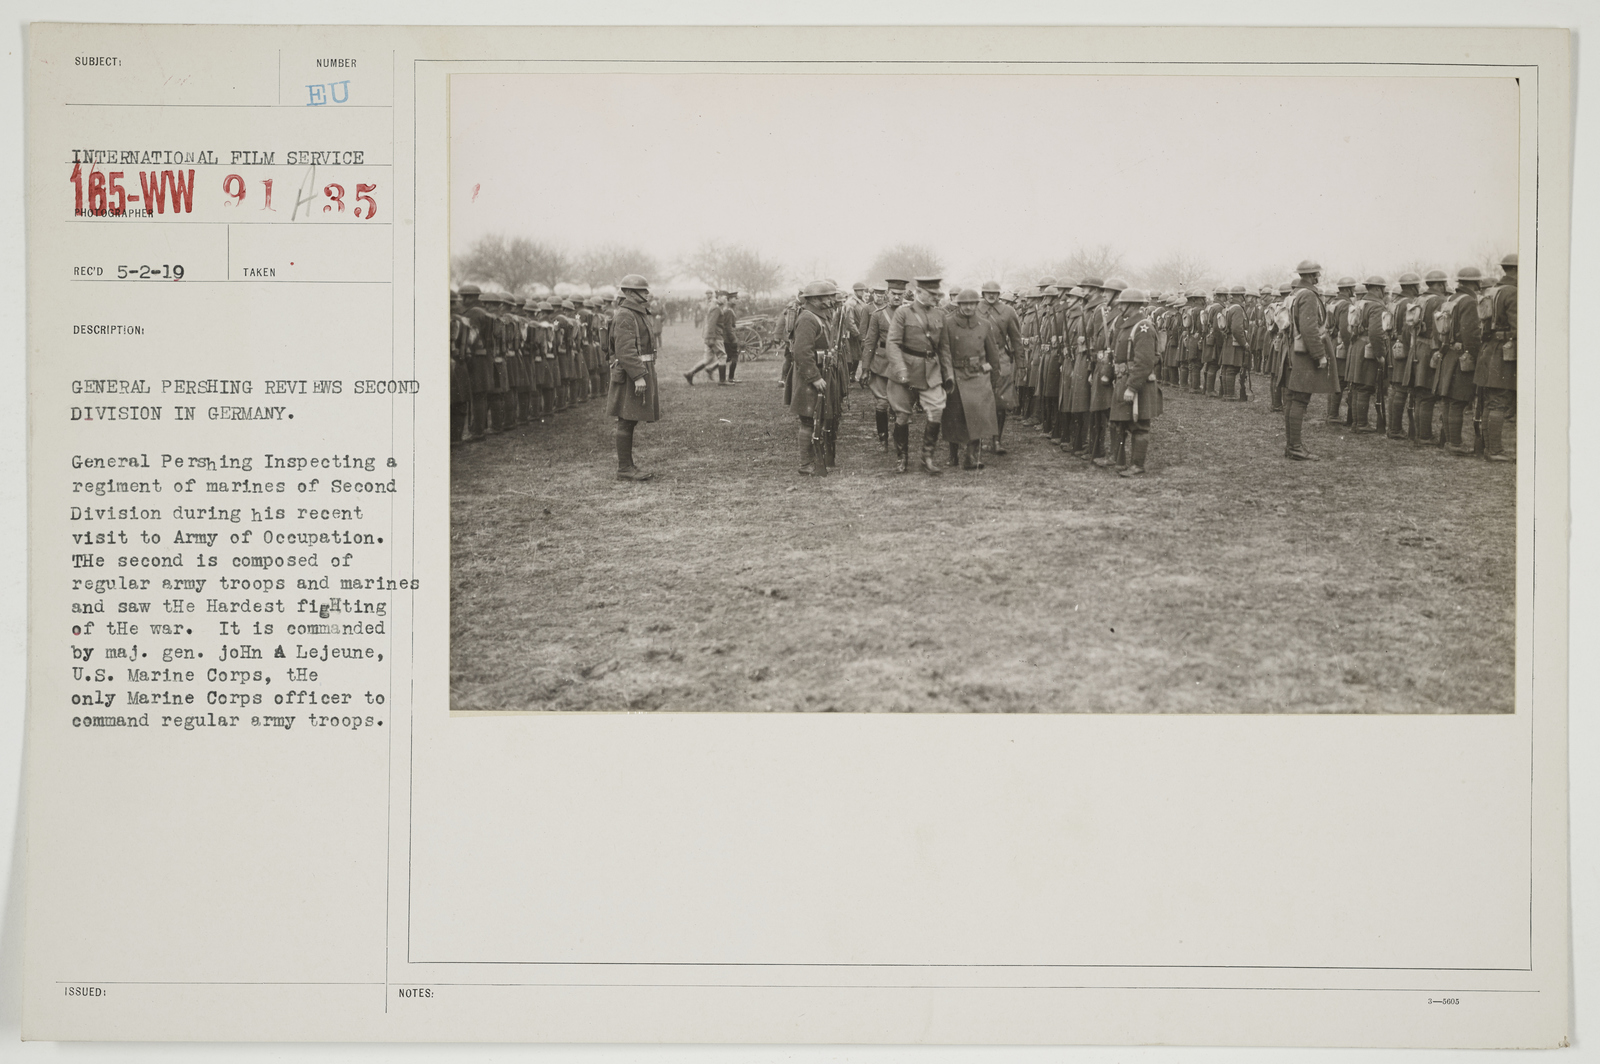 Ceremonies - Review in Theatre of Operations - American Troops - General Pershing reviews Second Division in Germany